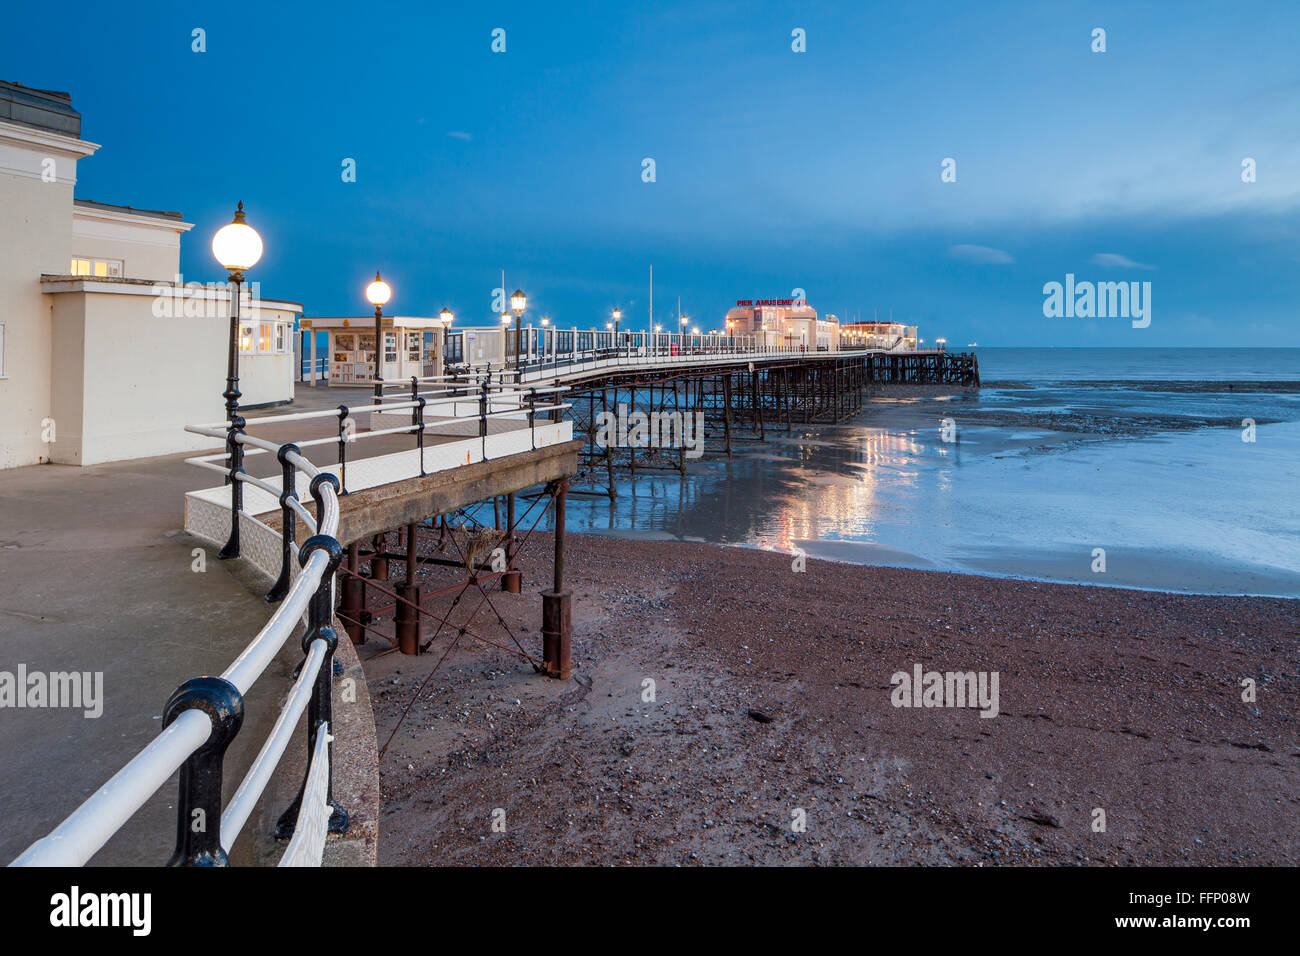 Winter evening at Worthing Pier, West Sussex, England. - Stock Image